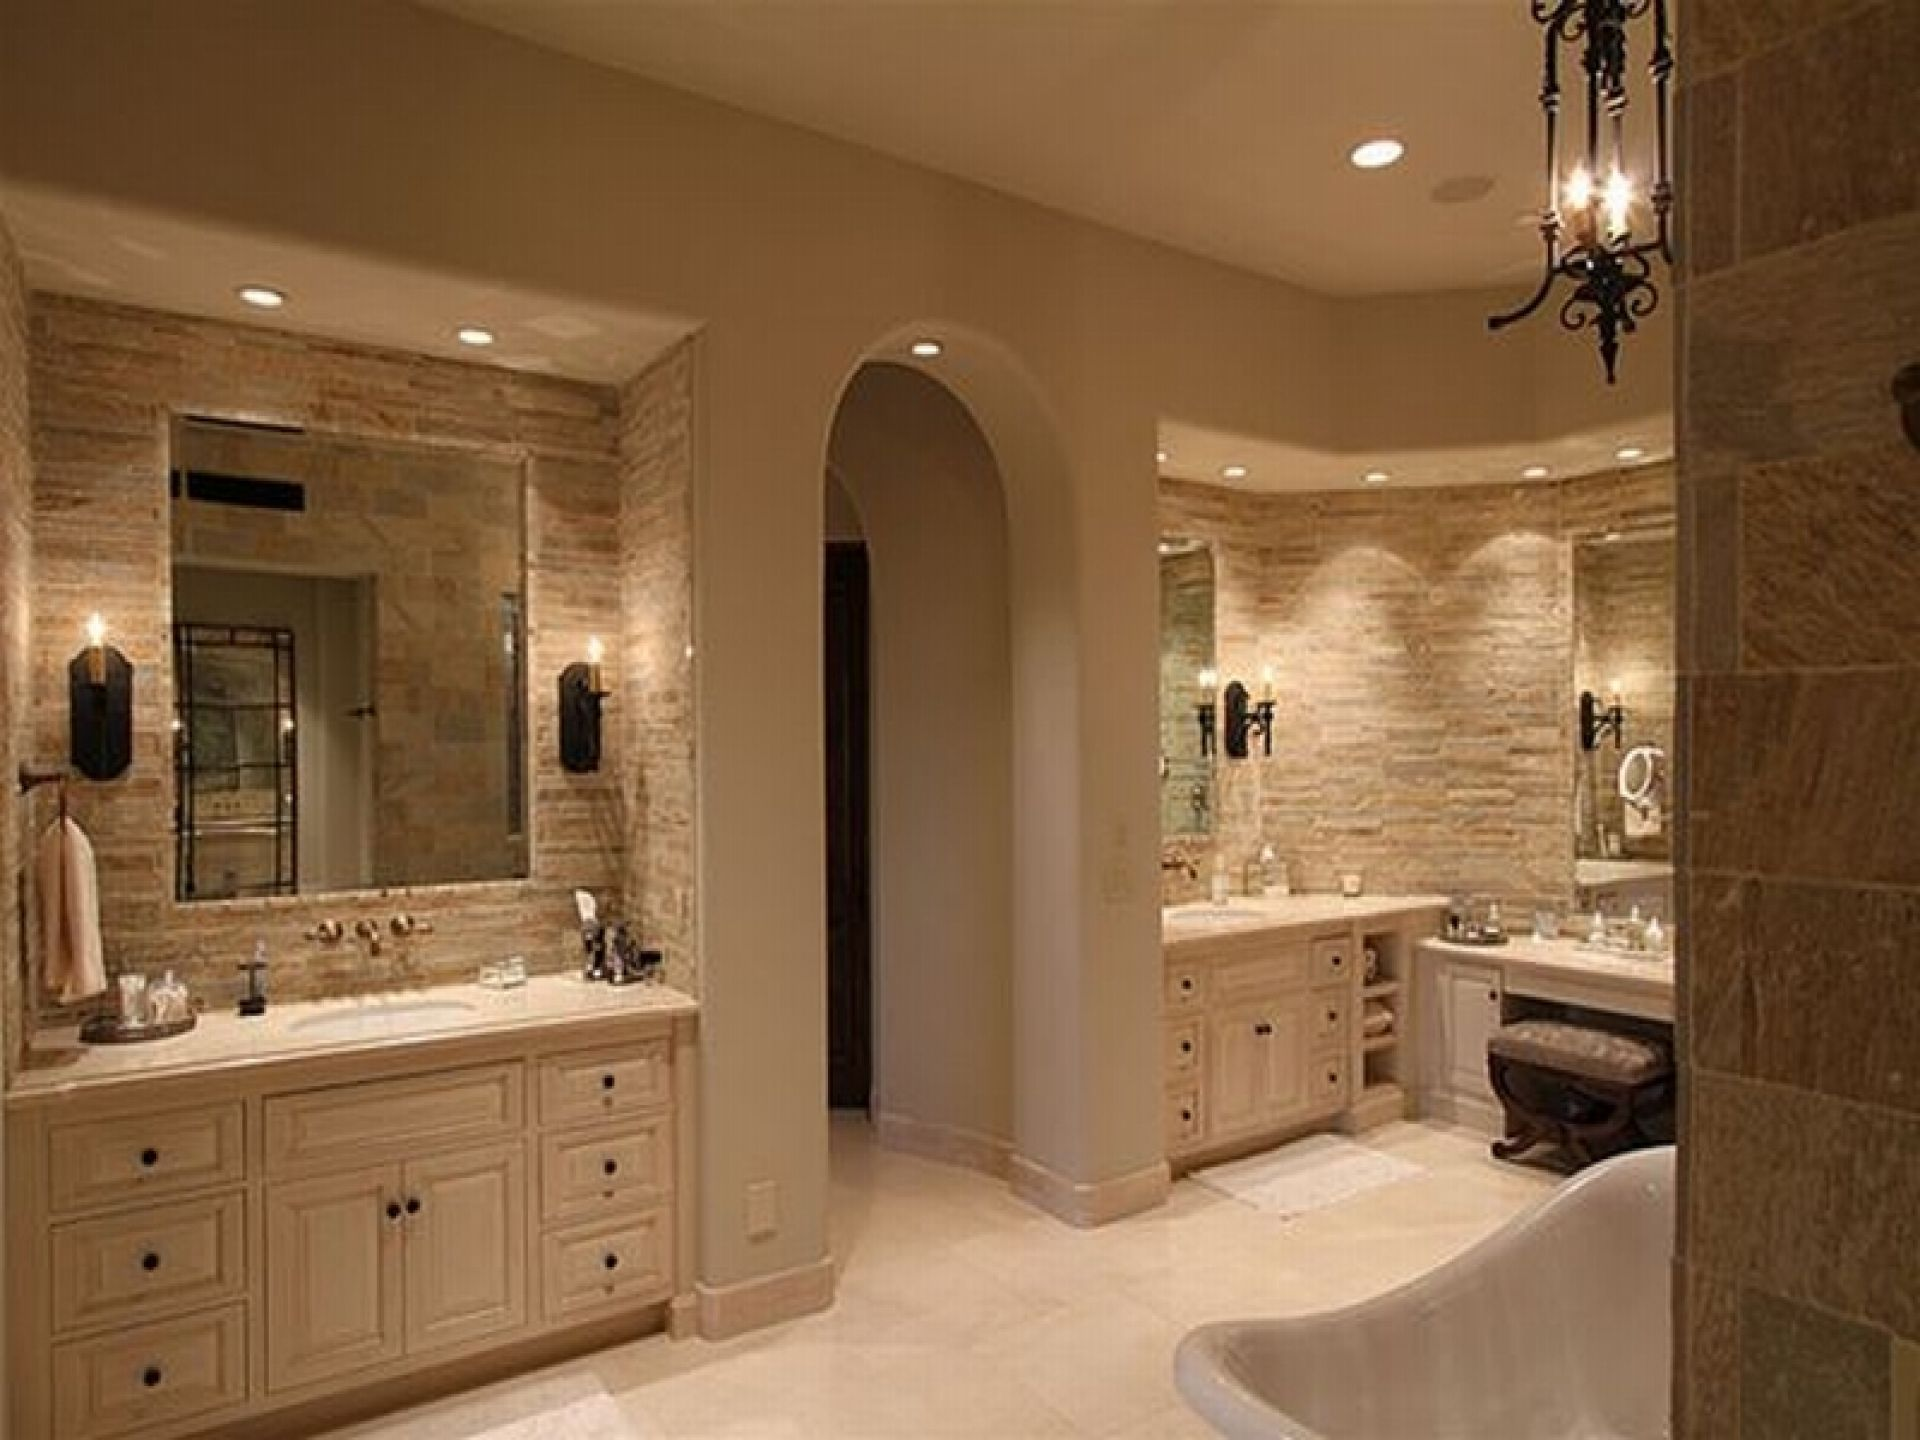 Best Images About Bathroom Ideas On Pinterest Clawfoot Tubs - Bathroom ideas